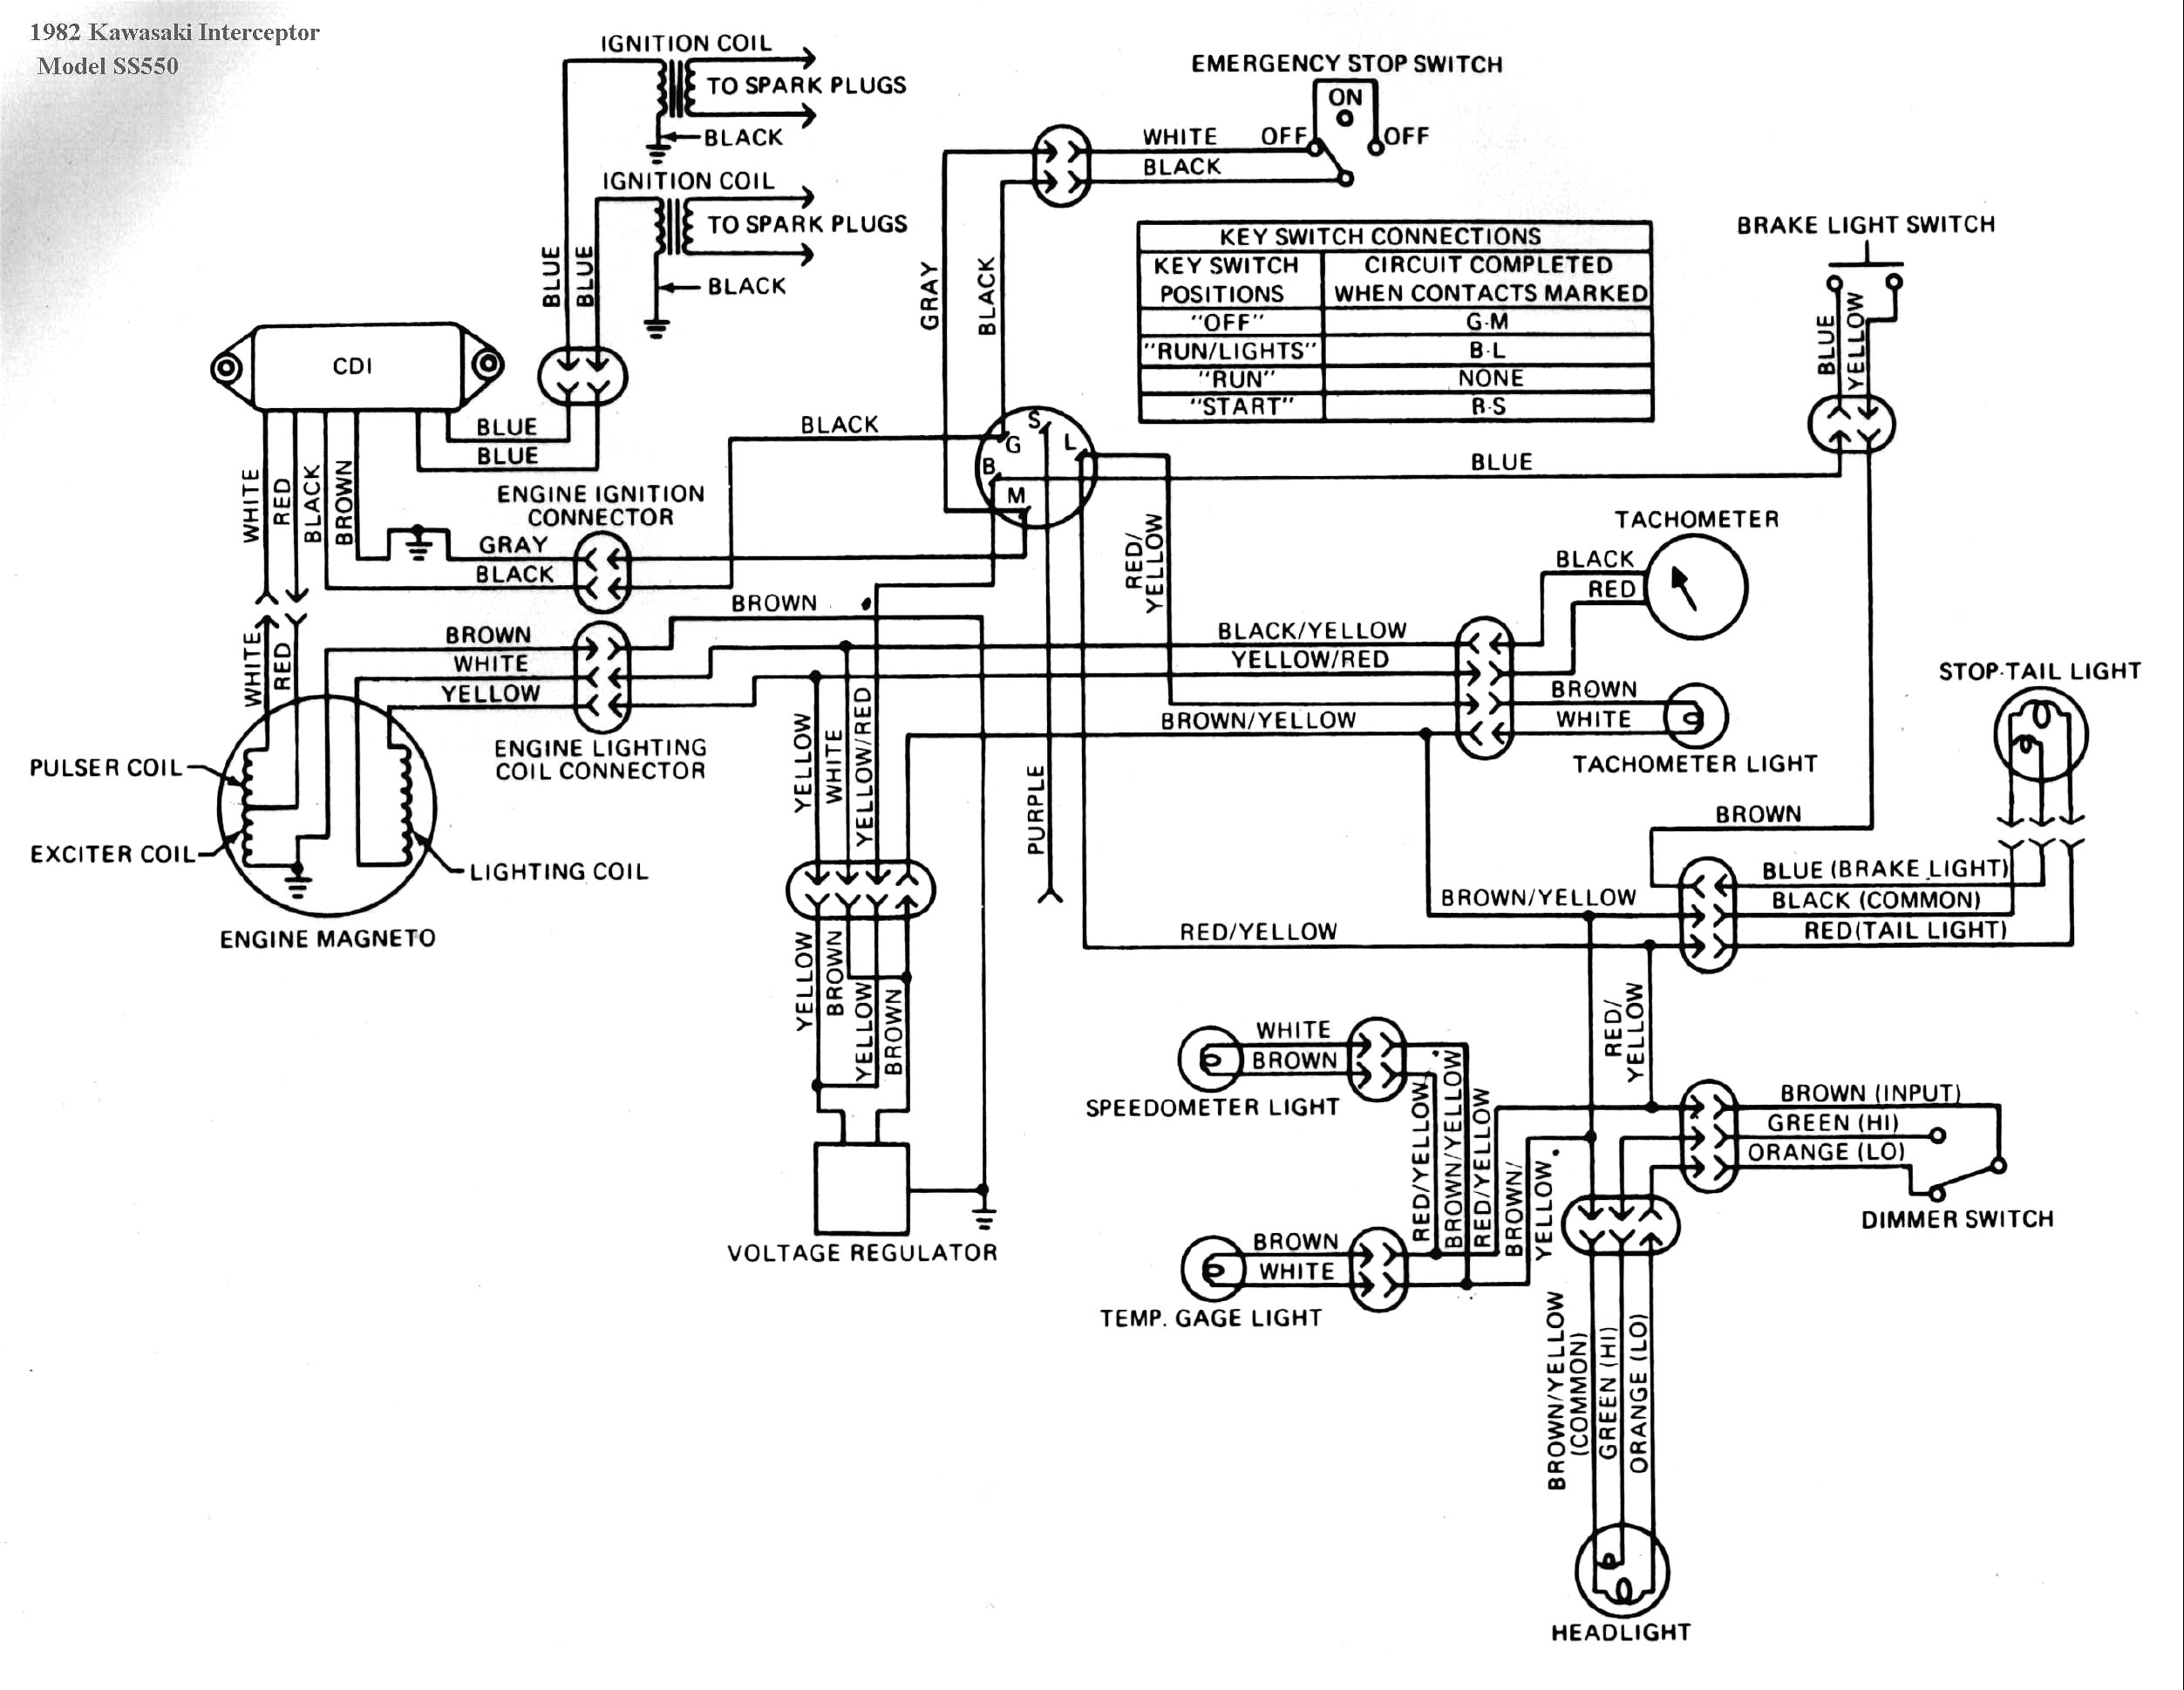 Jet Ski Motor Diagram - Wiring Diagrams Kawasaki Atv Wiring Diagram on